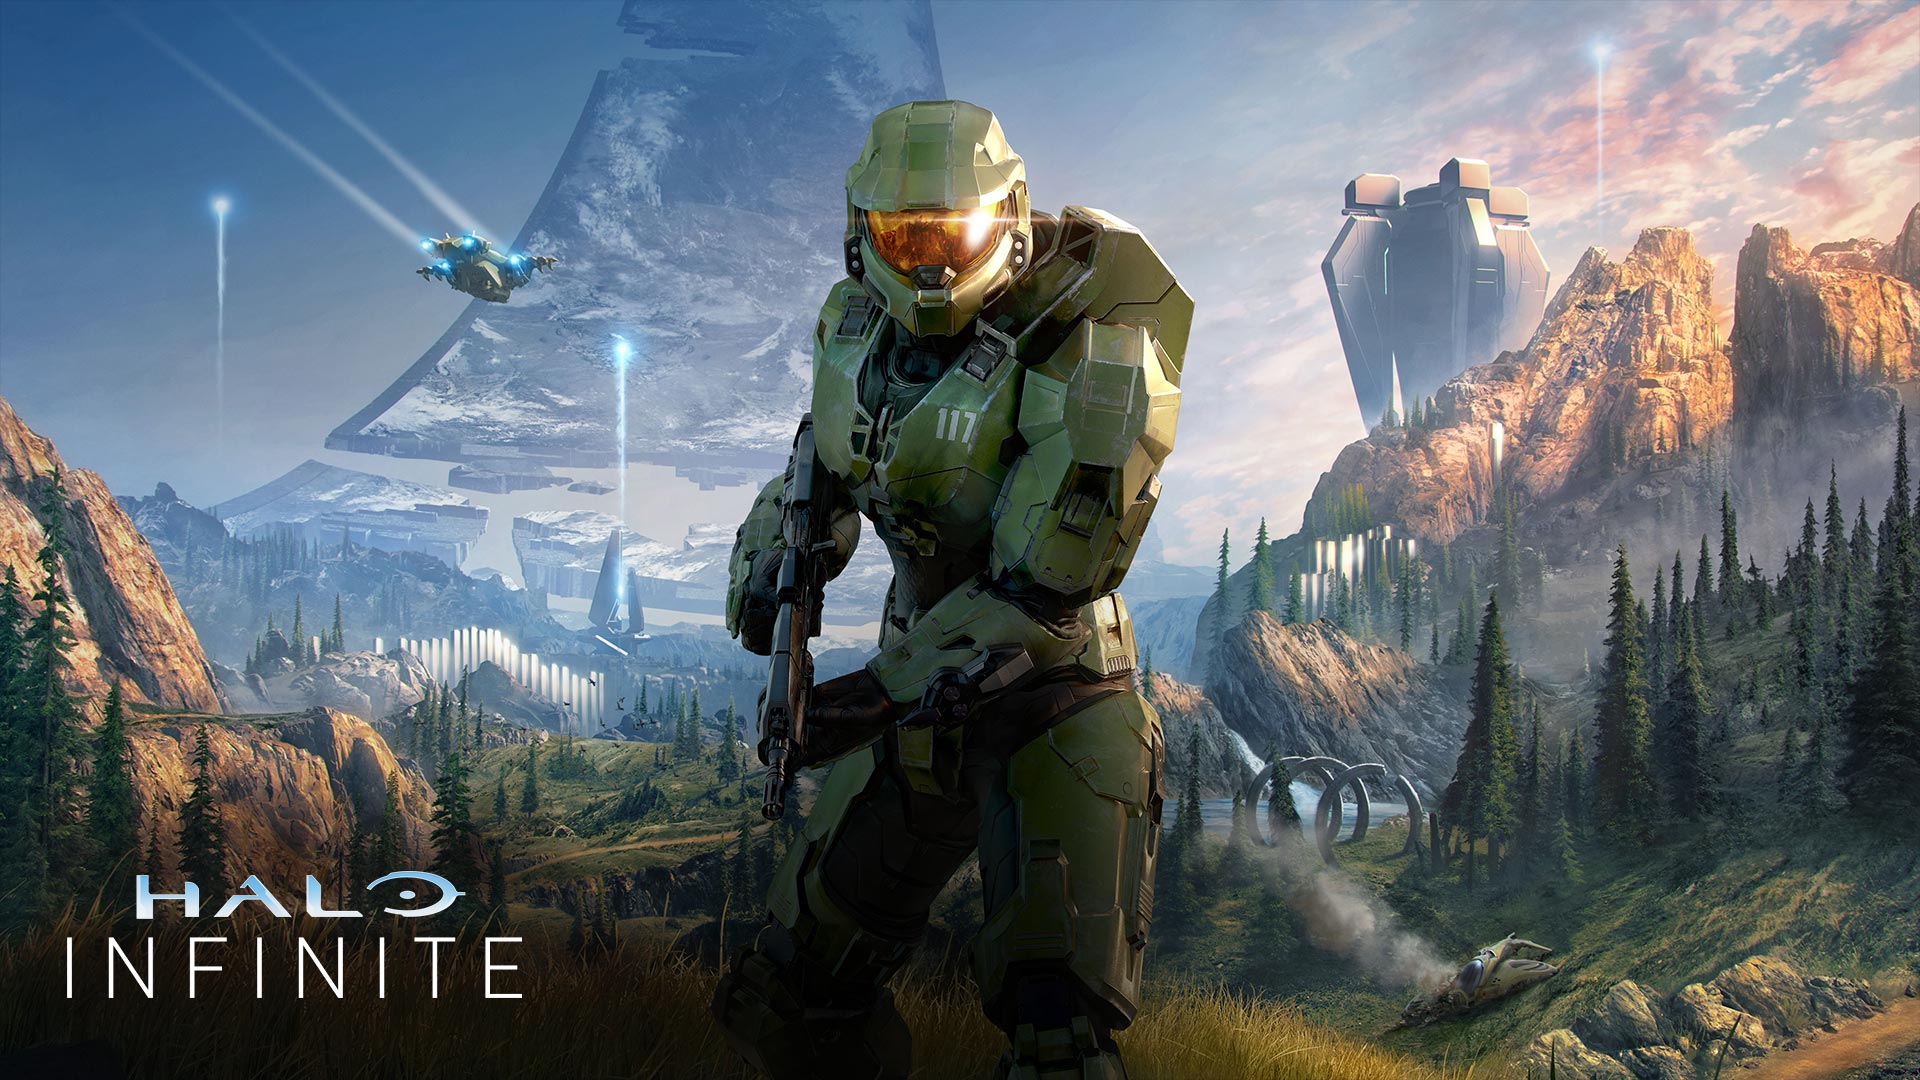 Master Chief faces forward in a lush valley with a broken Halo ring behind him